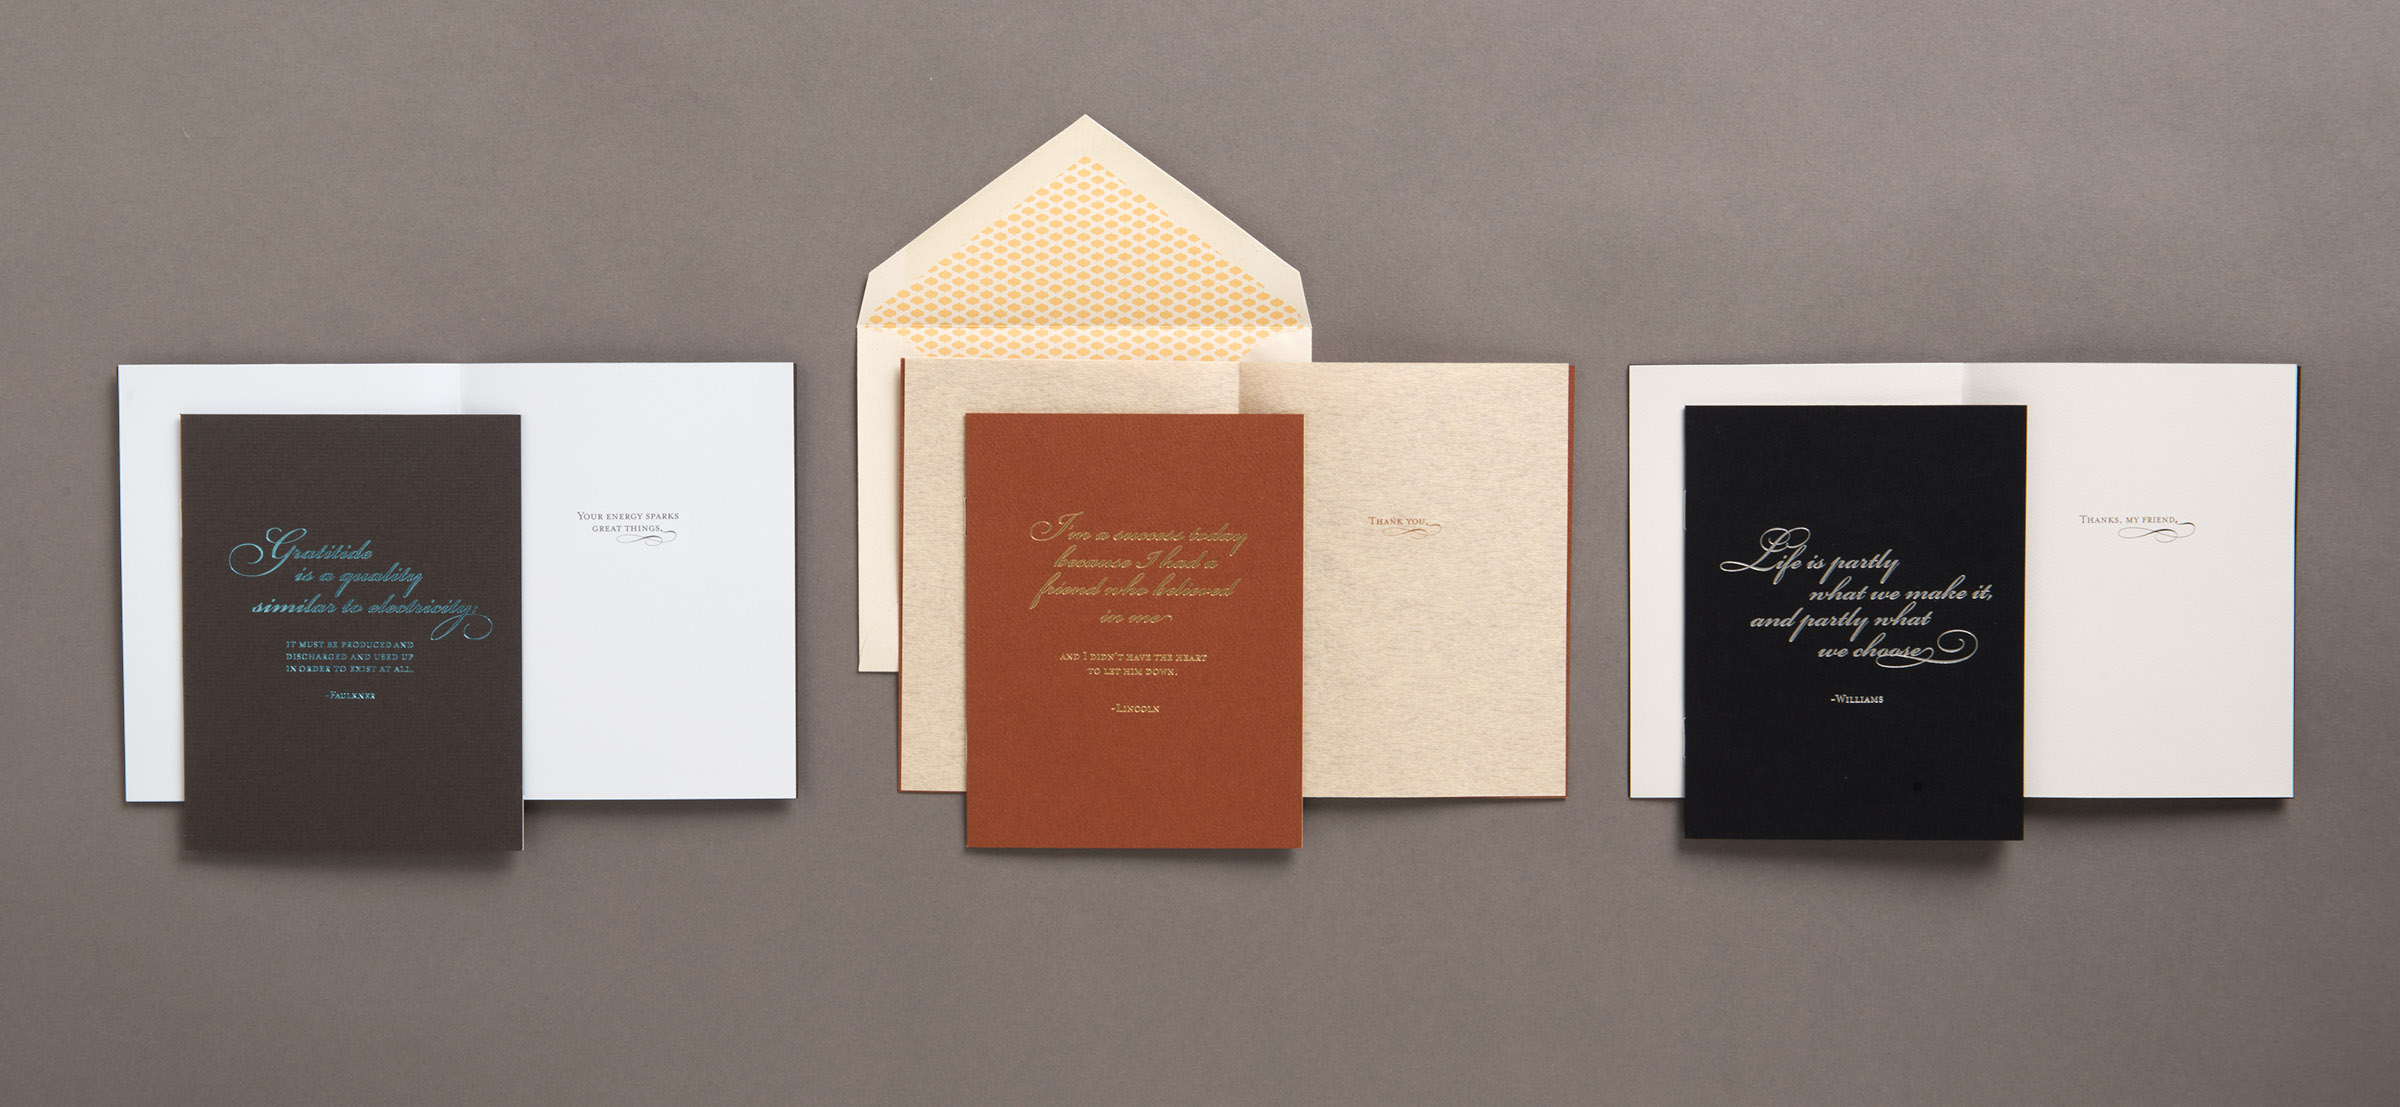 EnZed_2016Website_Packaging_09-FP-Your-Year_06